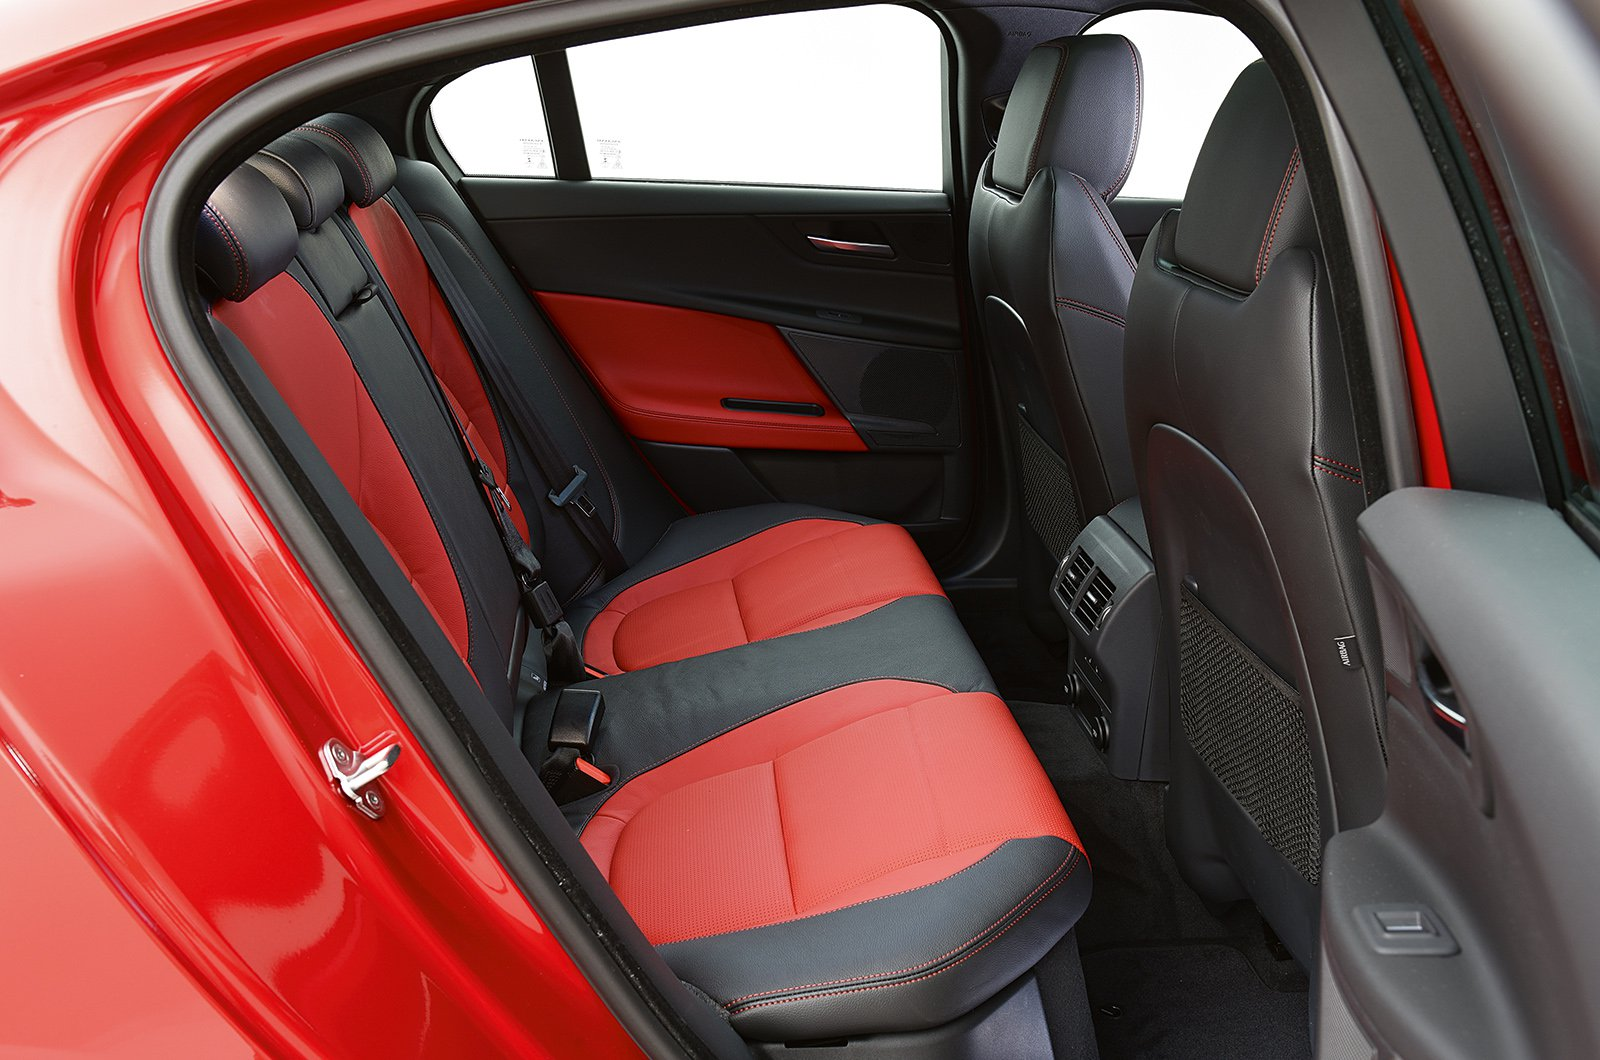 Jaguar XE rear leg room